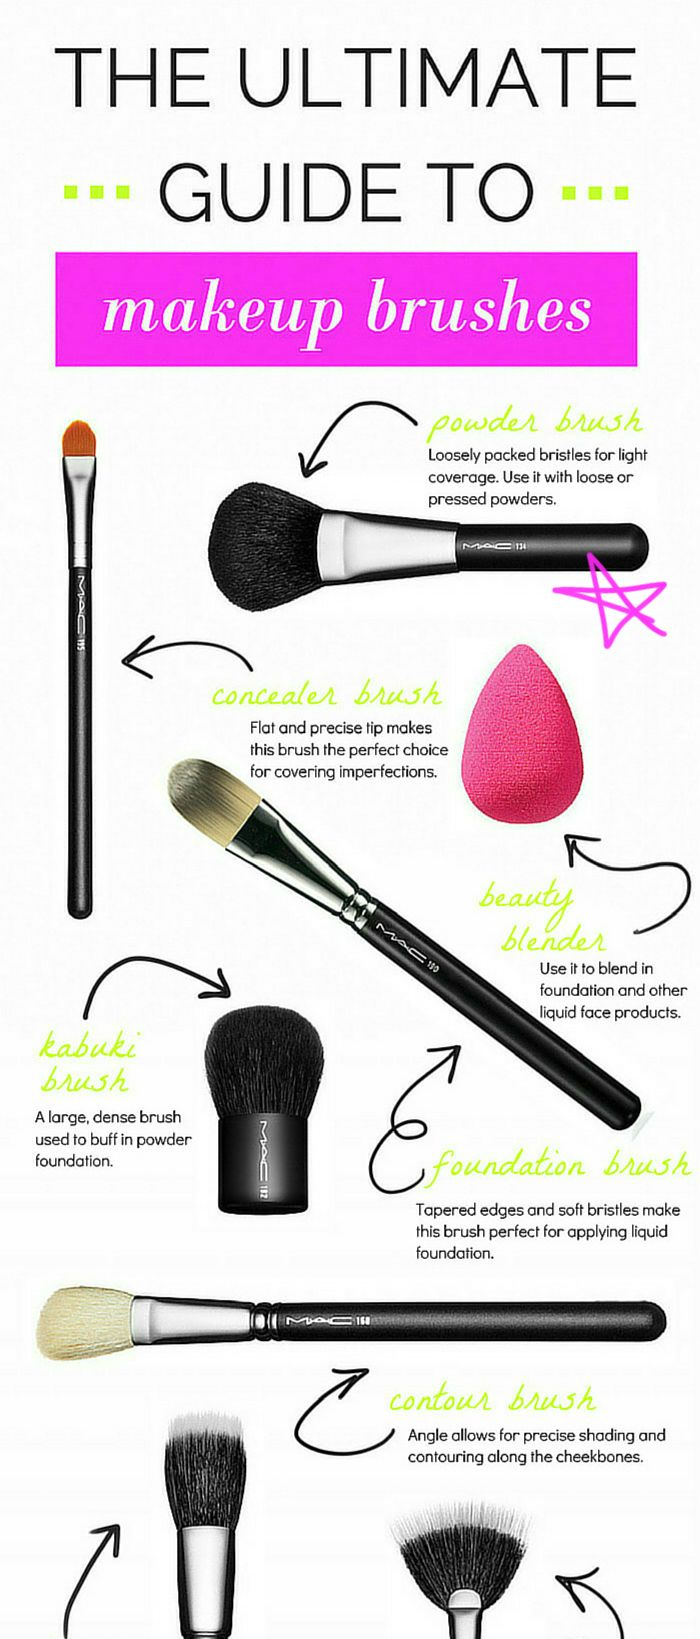 The ULTIMATE guide to makeup brushes- super simple visual guide to brushes, along with tips, tricks, and affordable brush recommendations! Where has this pin been all my life?!